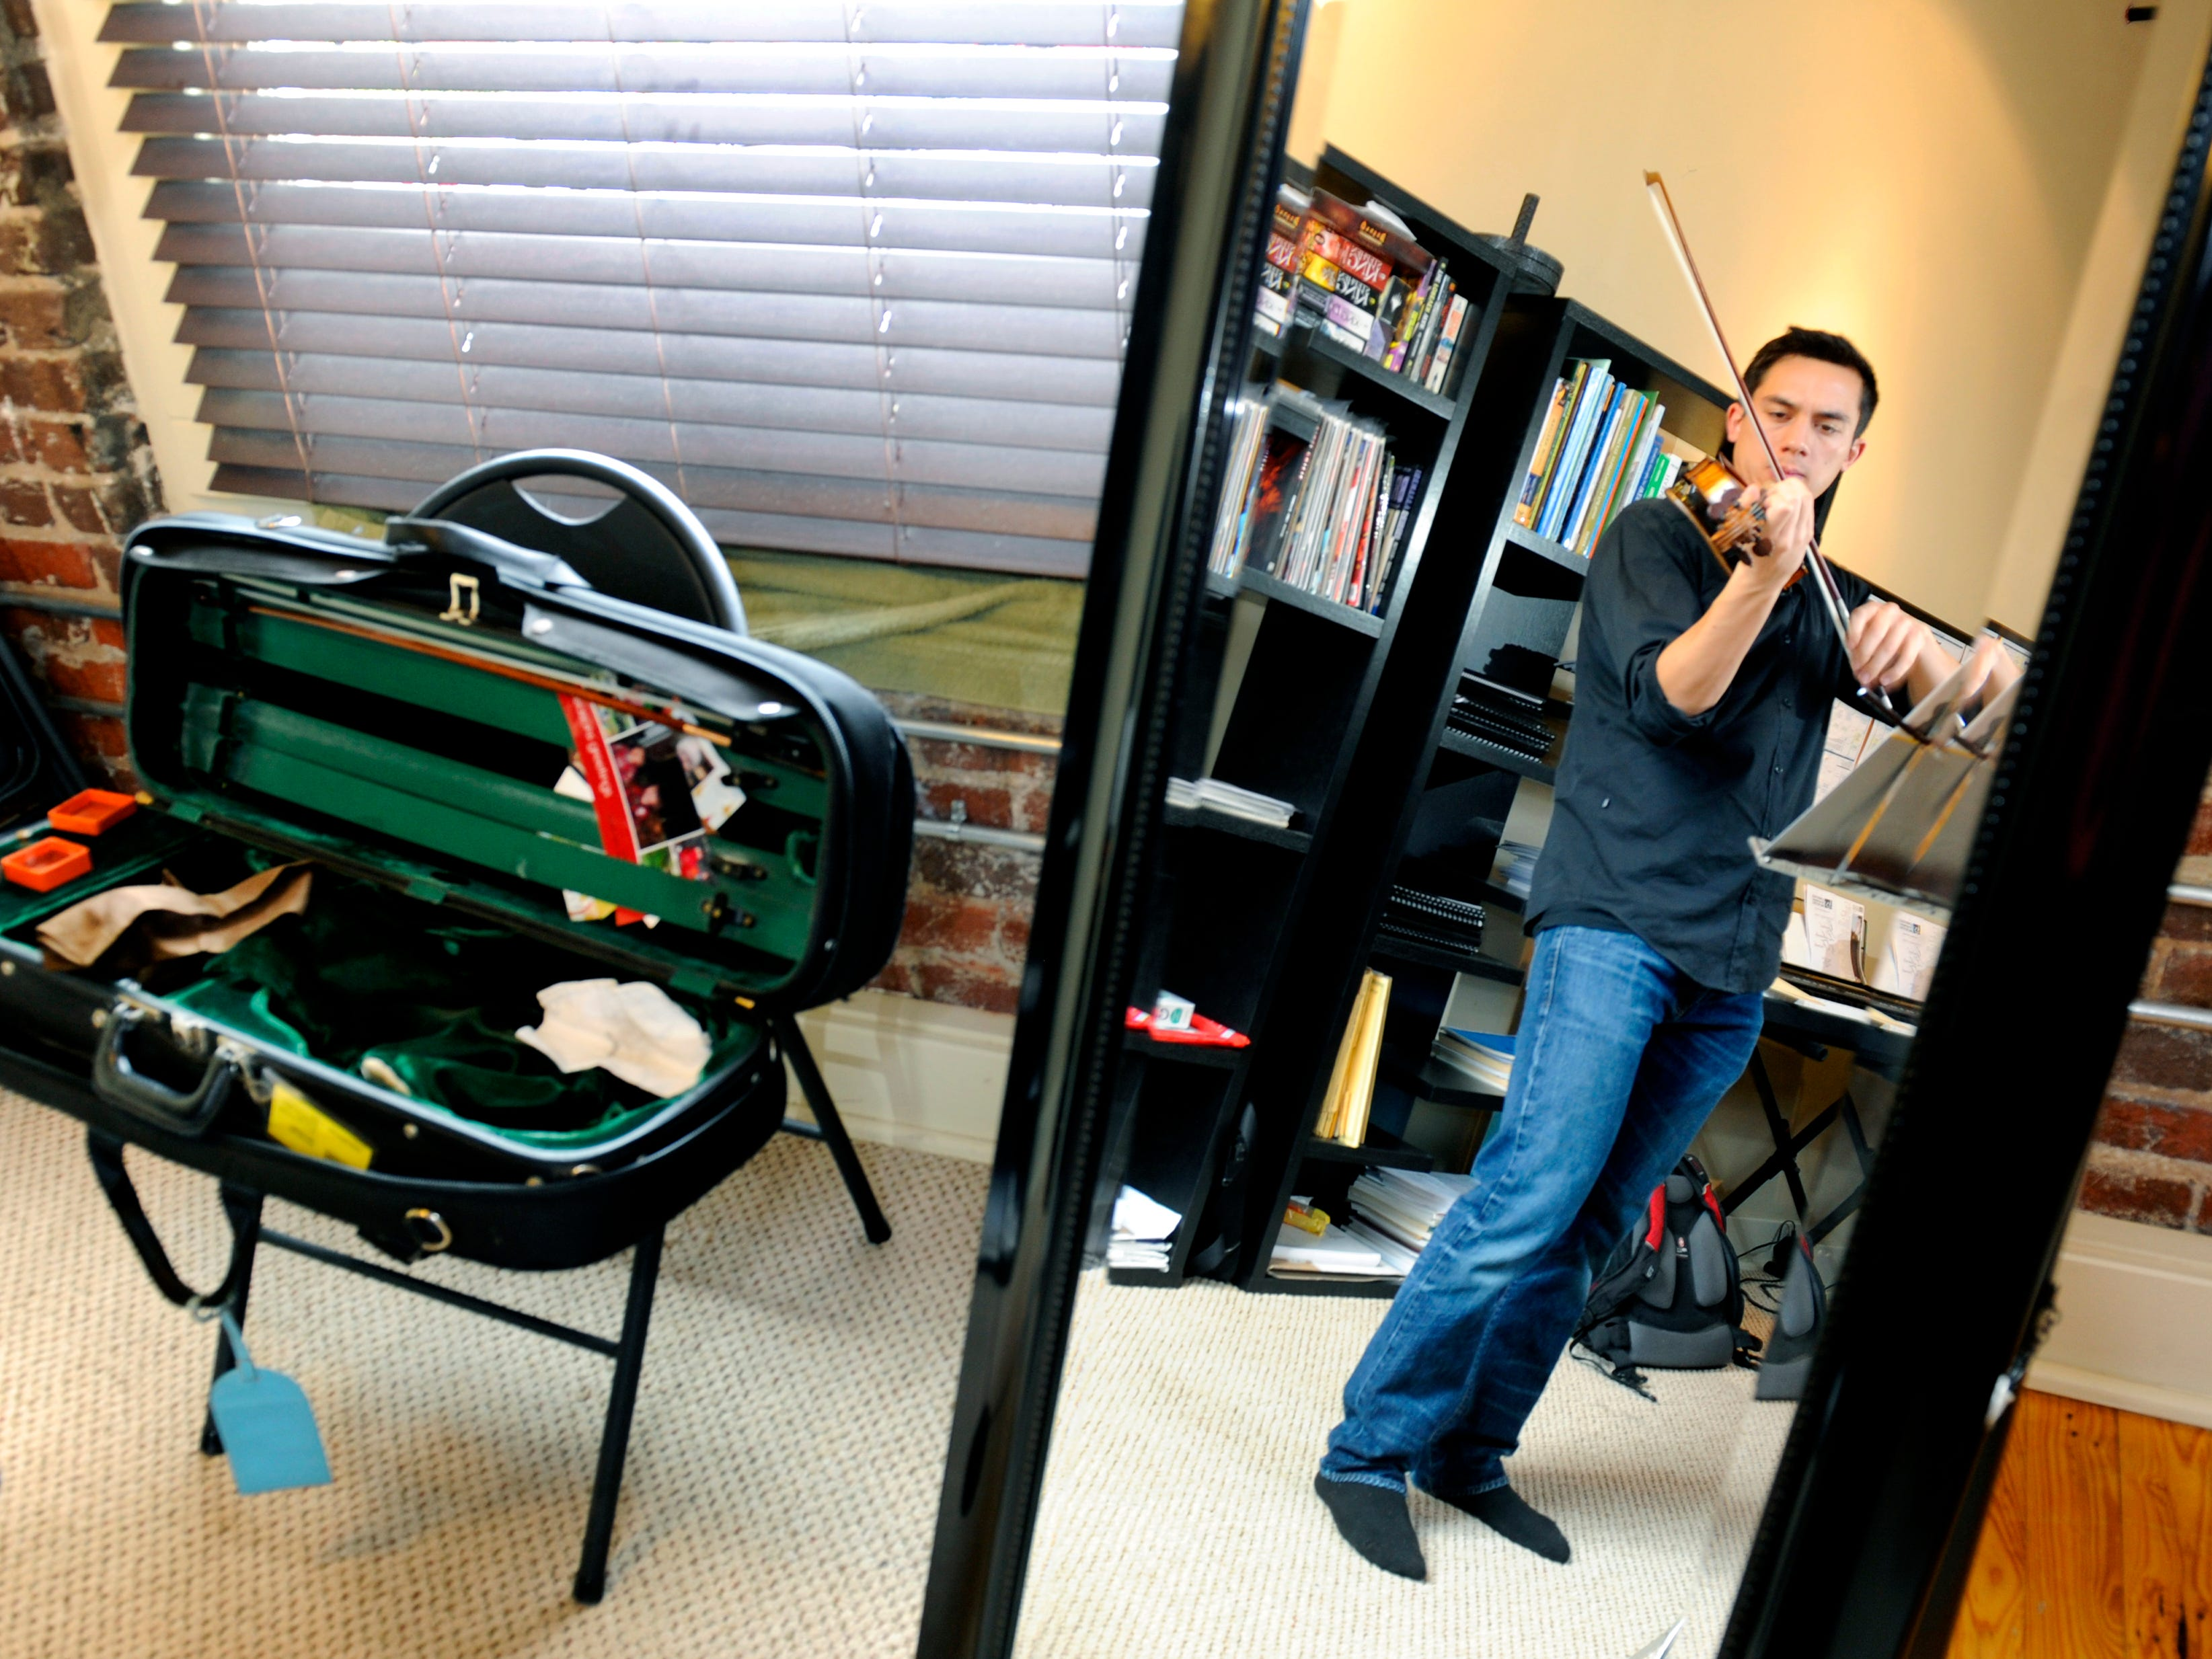 Portraits of people showing their personality is often a difficult assignment. KSC Concertmaster Gabriel Lefkowitz was practicing in his home on Jackson Ave in Knoxville. I used a mirror he uses to check his posture while he is practicing to make a photo of his rehearsal.